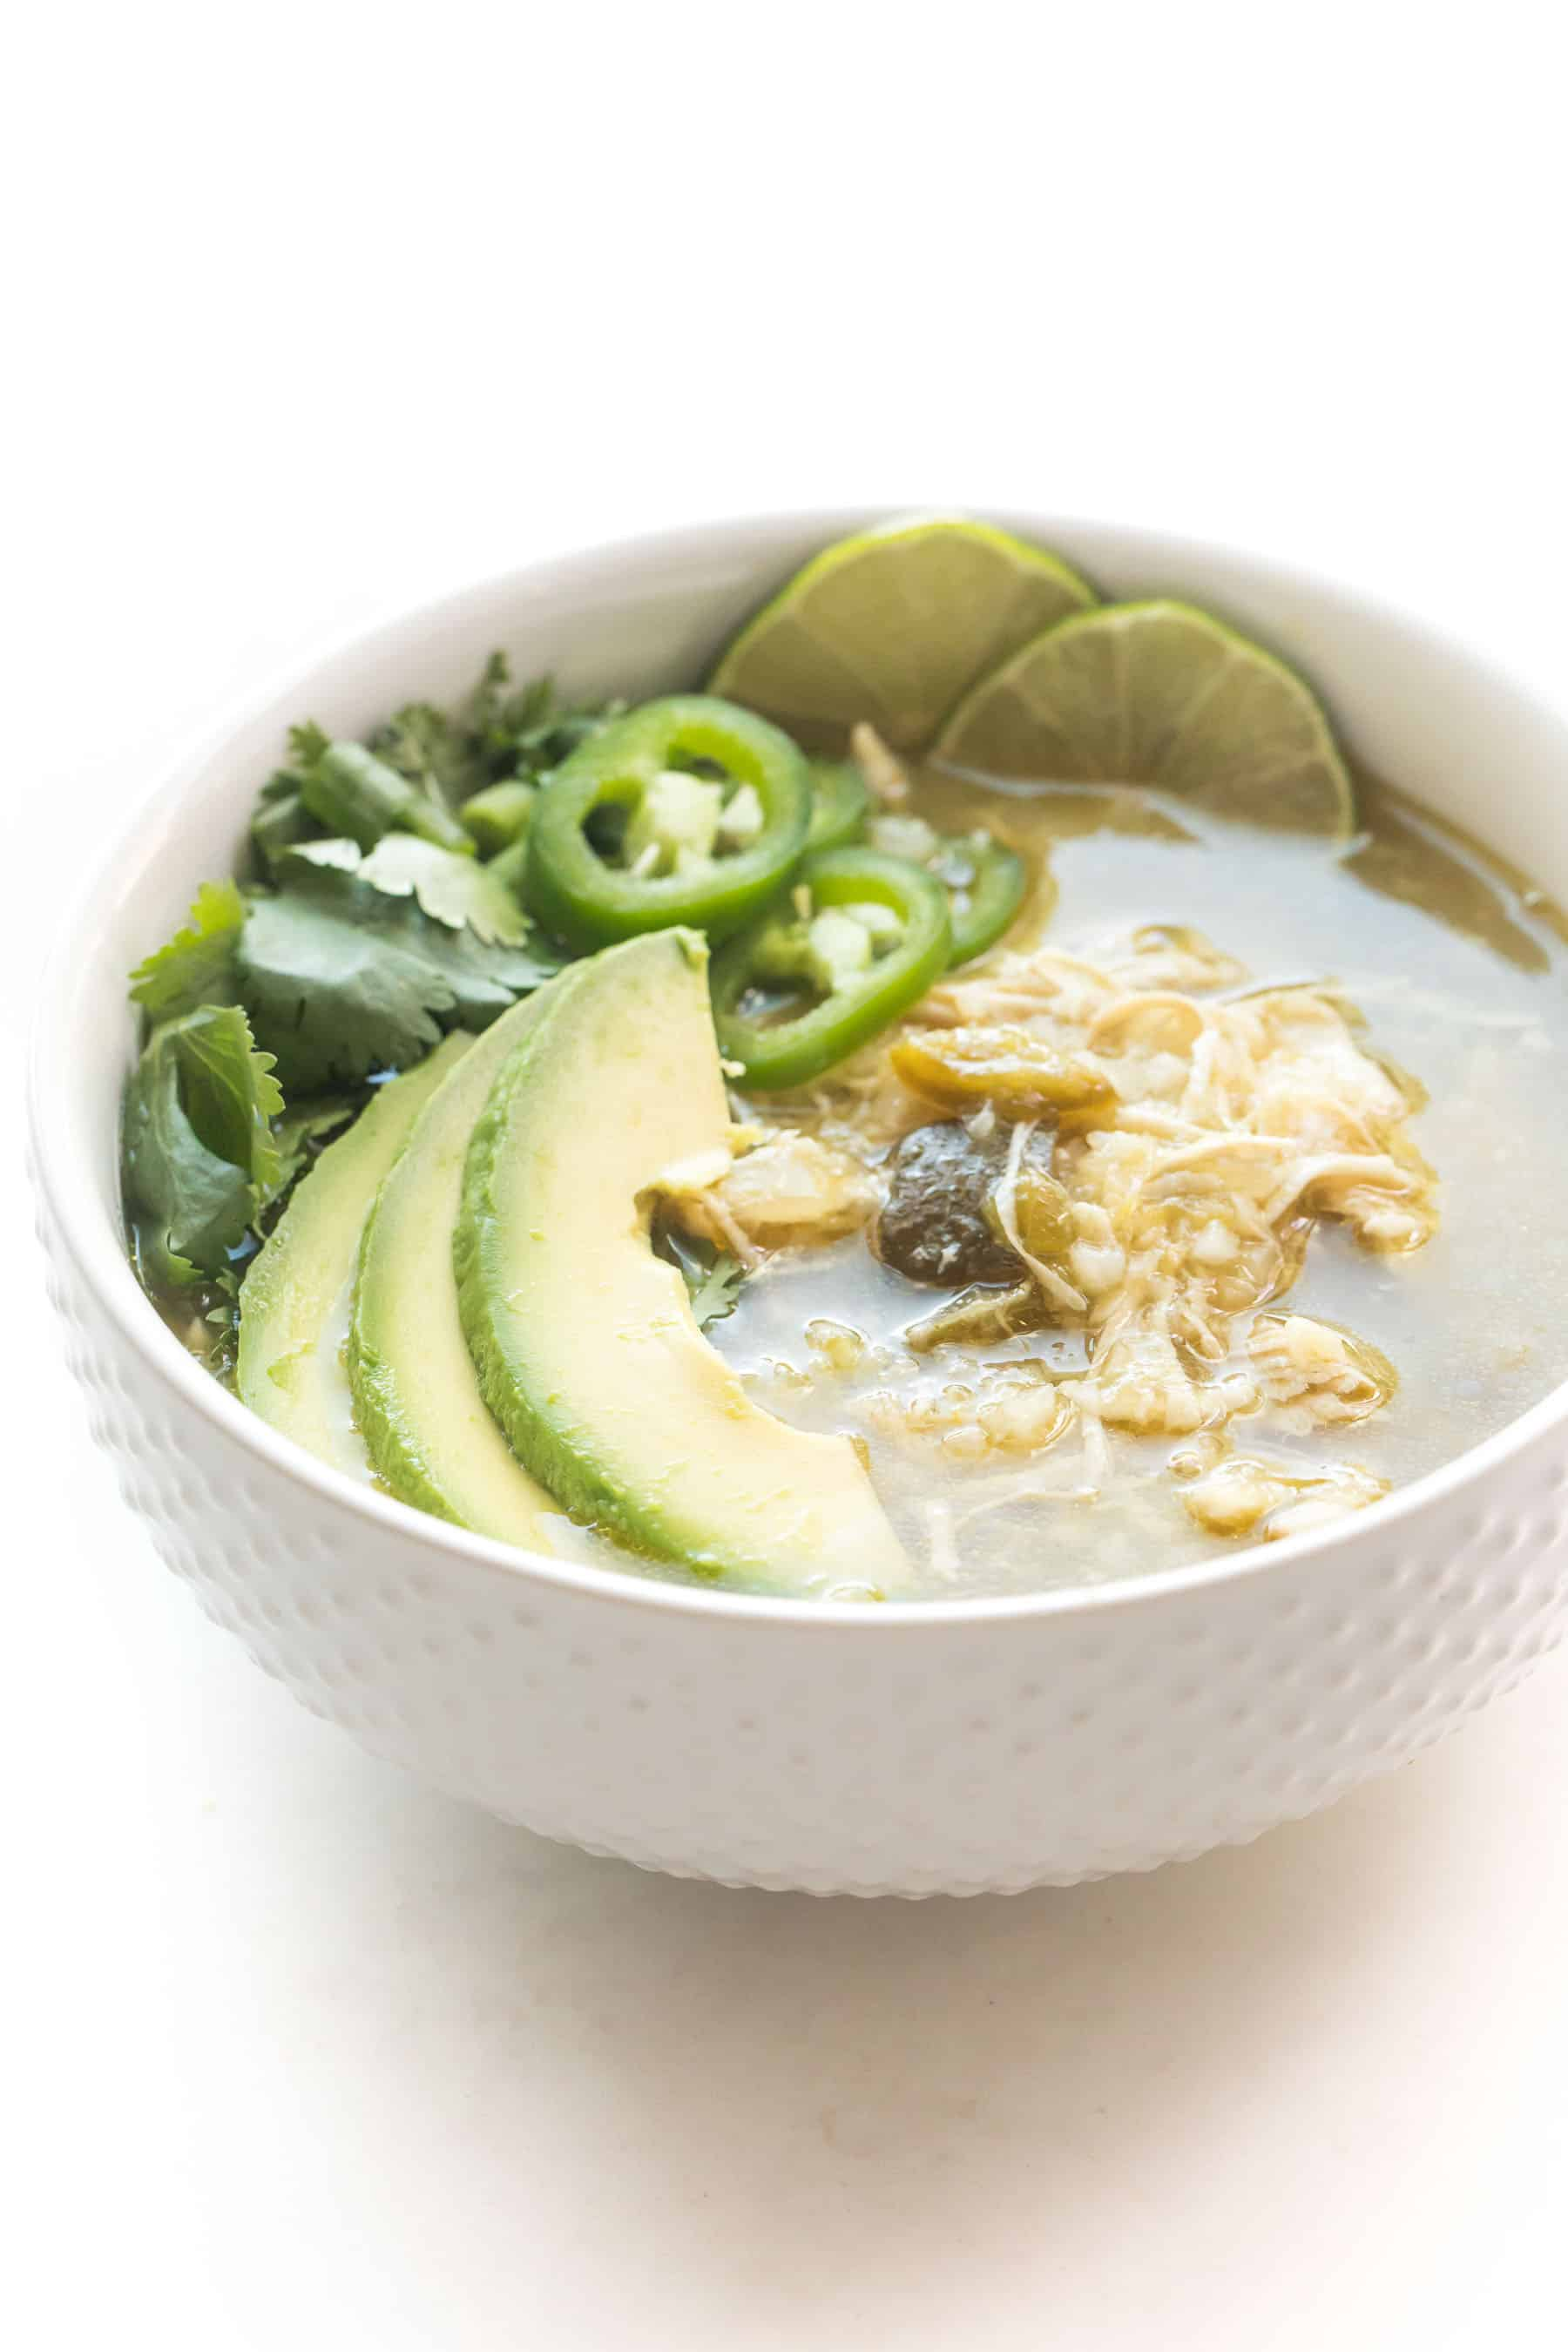 green verde chicken chili in a white bowl on a white background